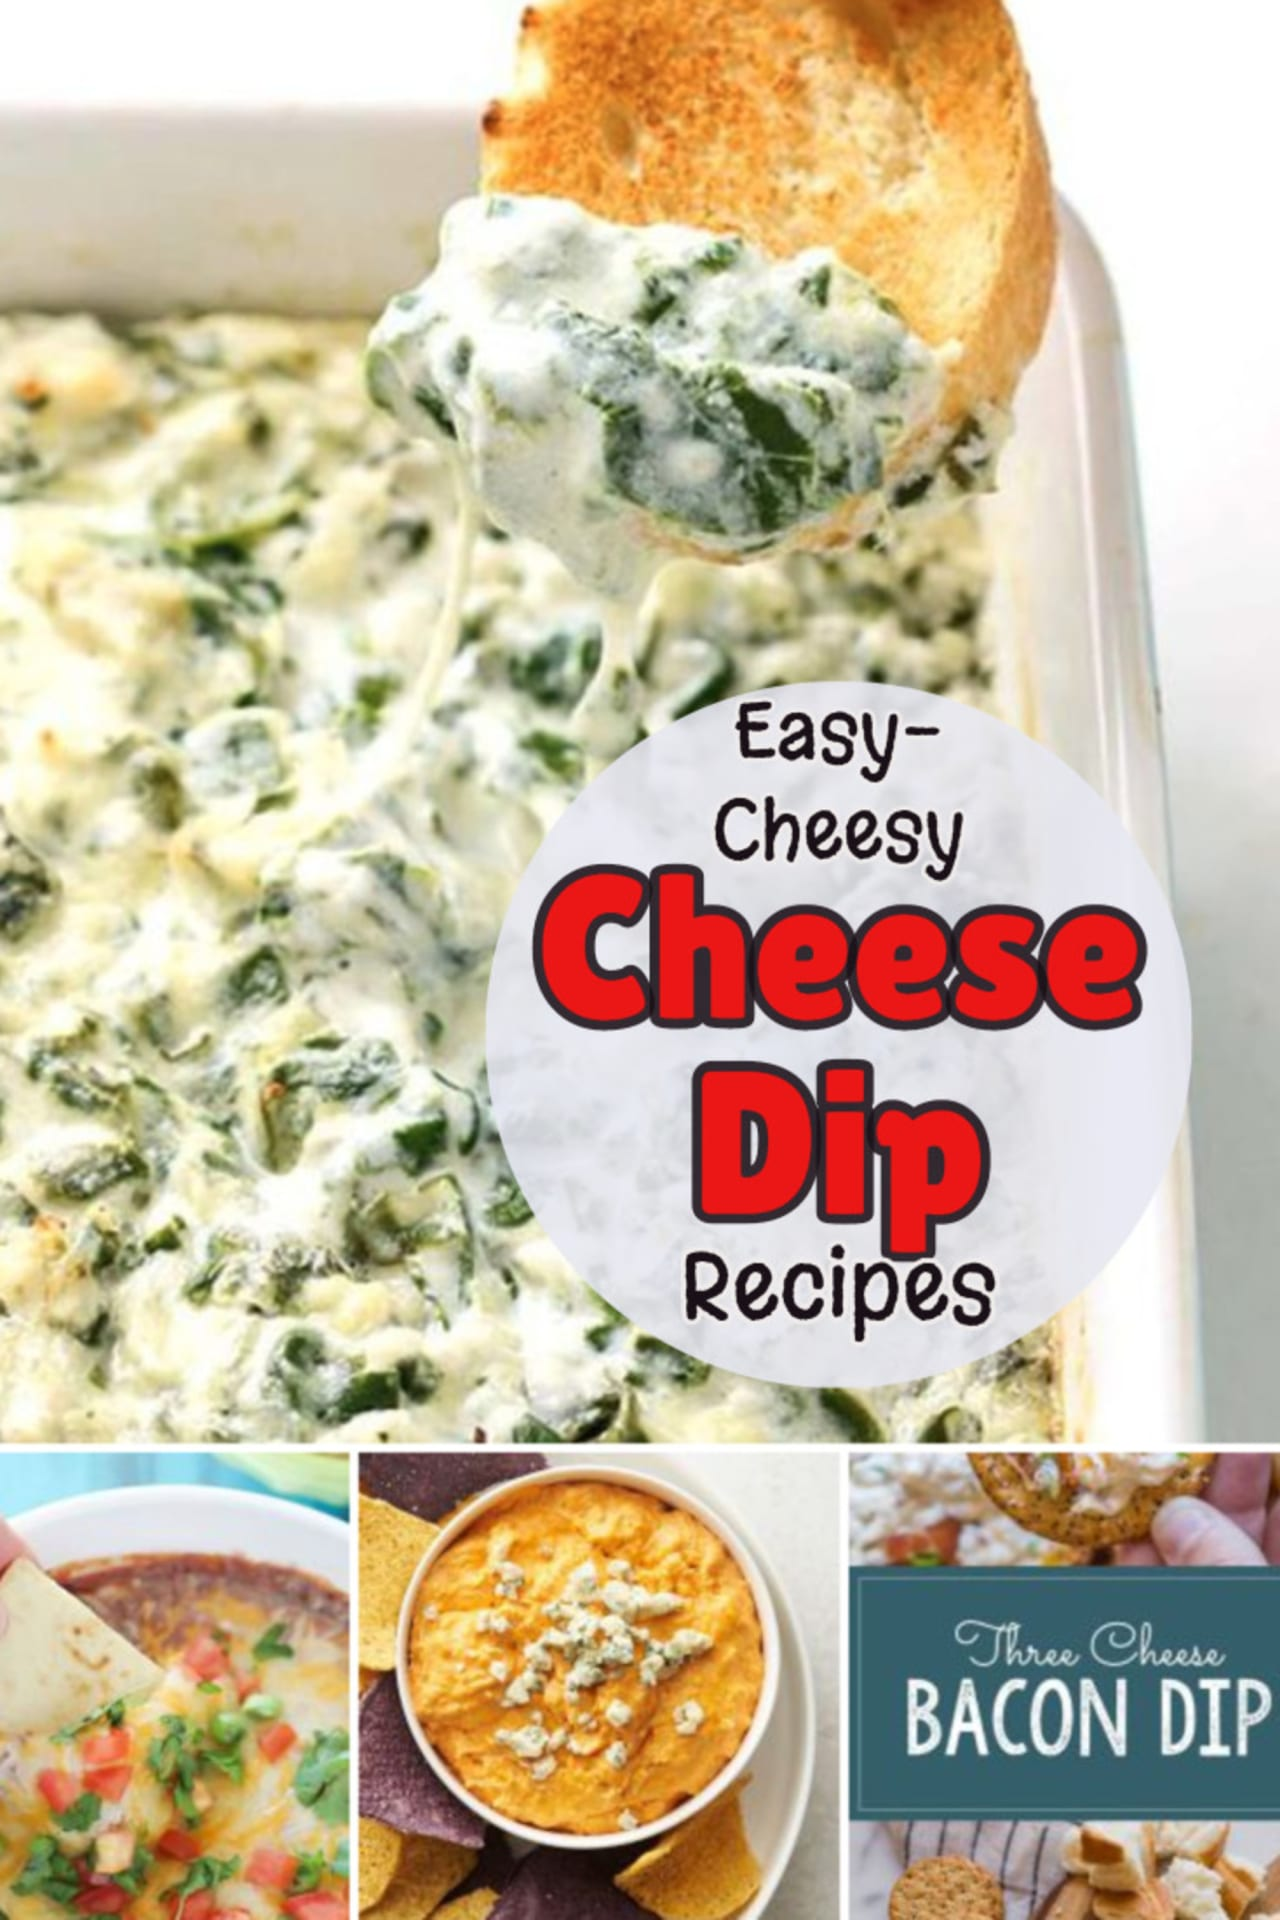 Easy cheese dip recipes for a crowd. Easy Cheesy Cheese Dip Recipes - Great Appetizer Ideas!